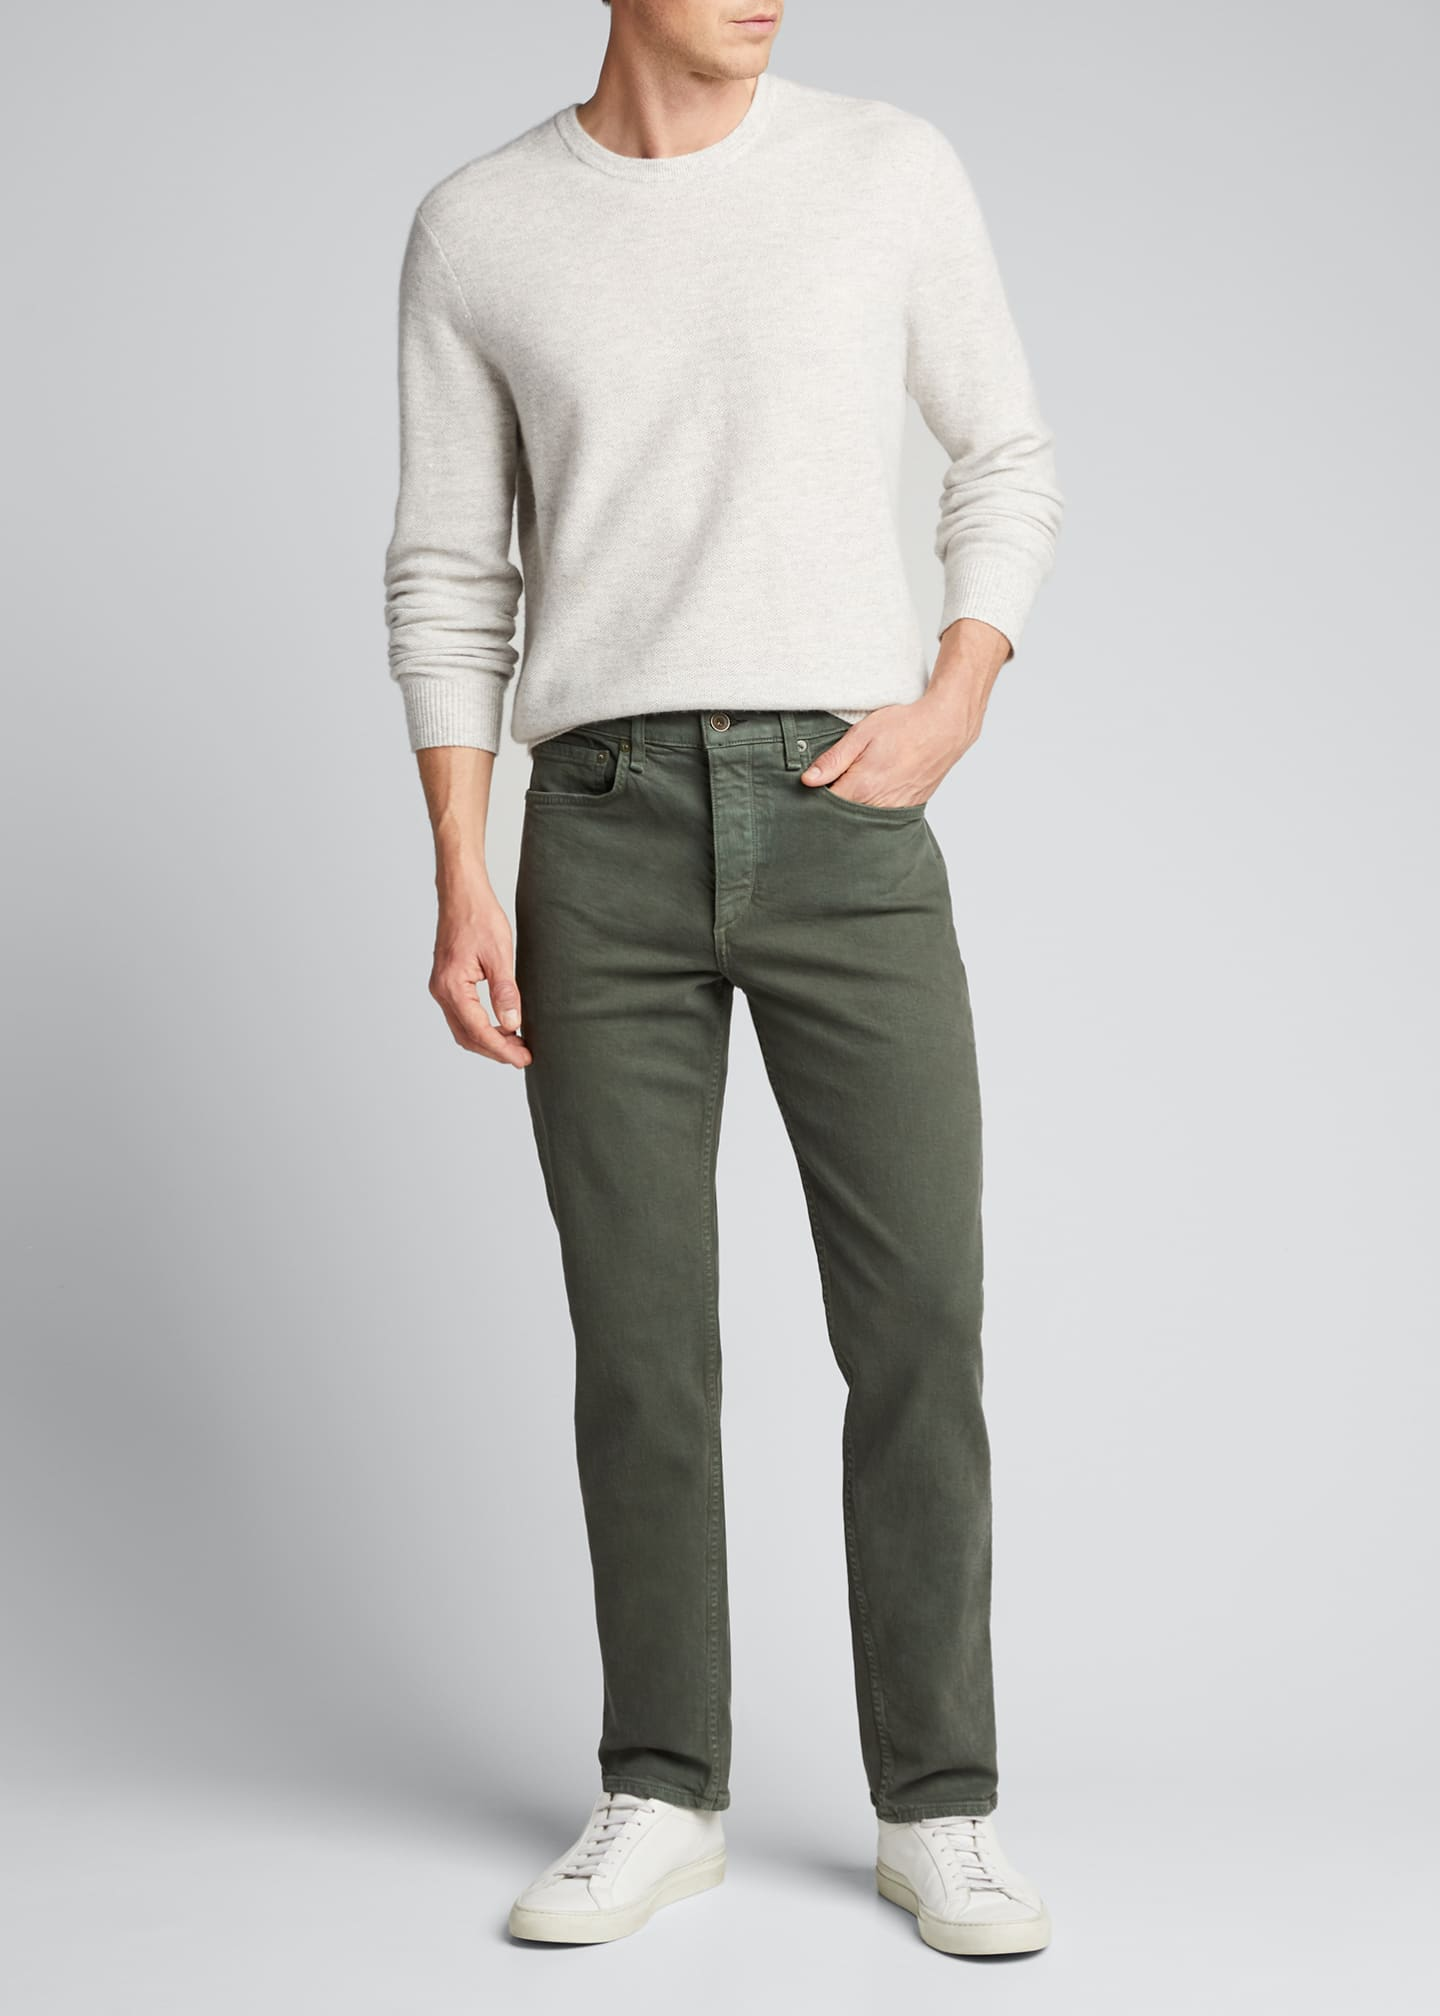 Image 1 of 5: Men's Fit 2 Mid-Rise Relaxed Slim-Fit Jeans